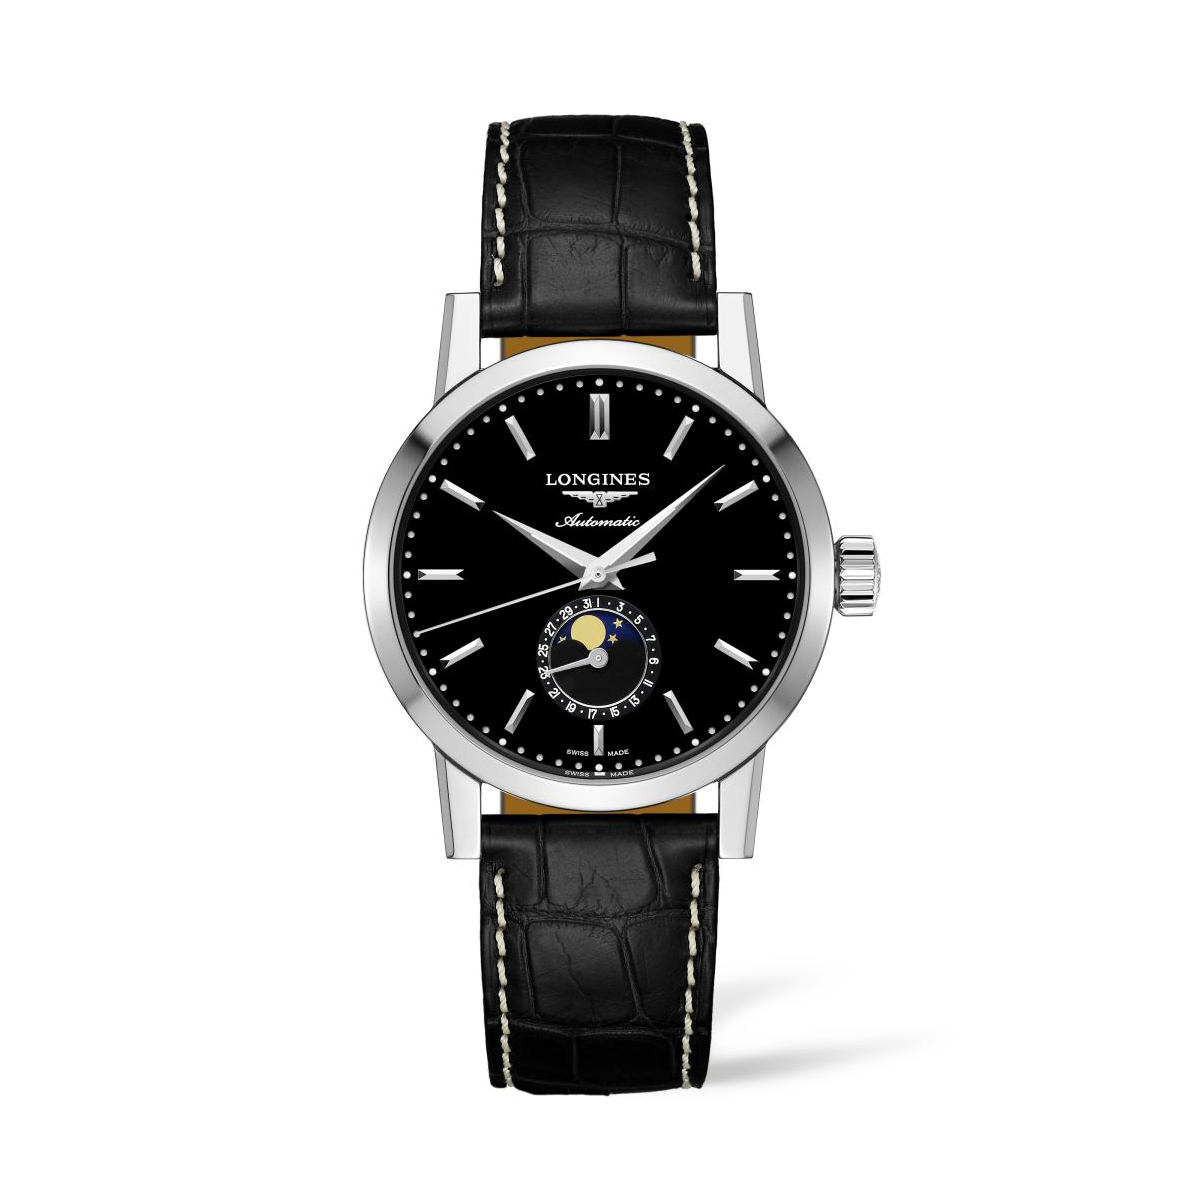 L48264520 — The Longines 1832 40mm Automatic